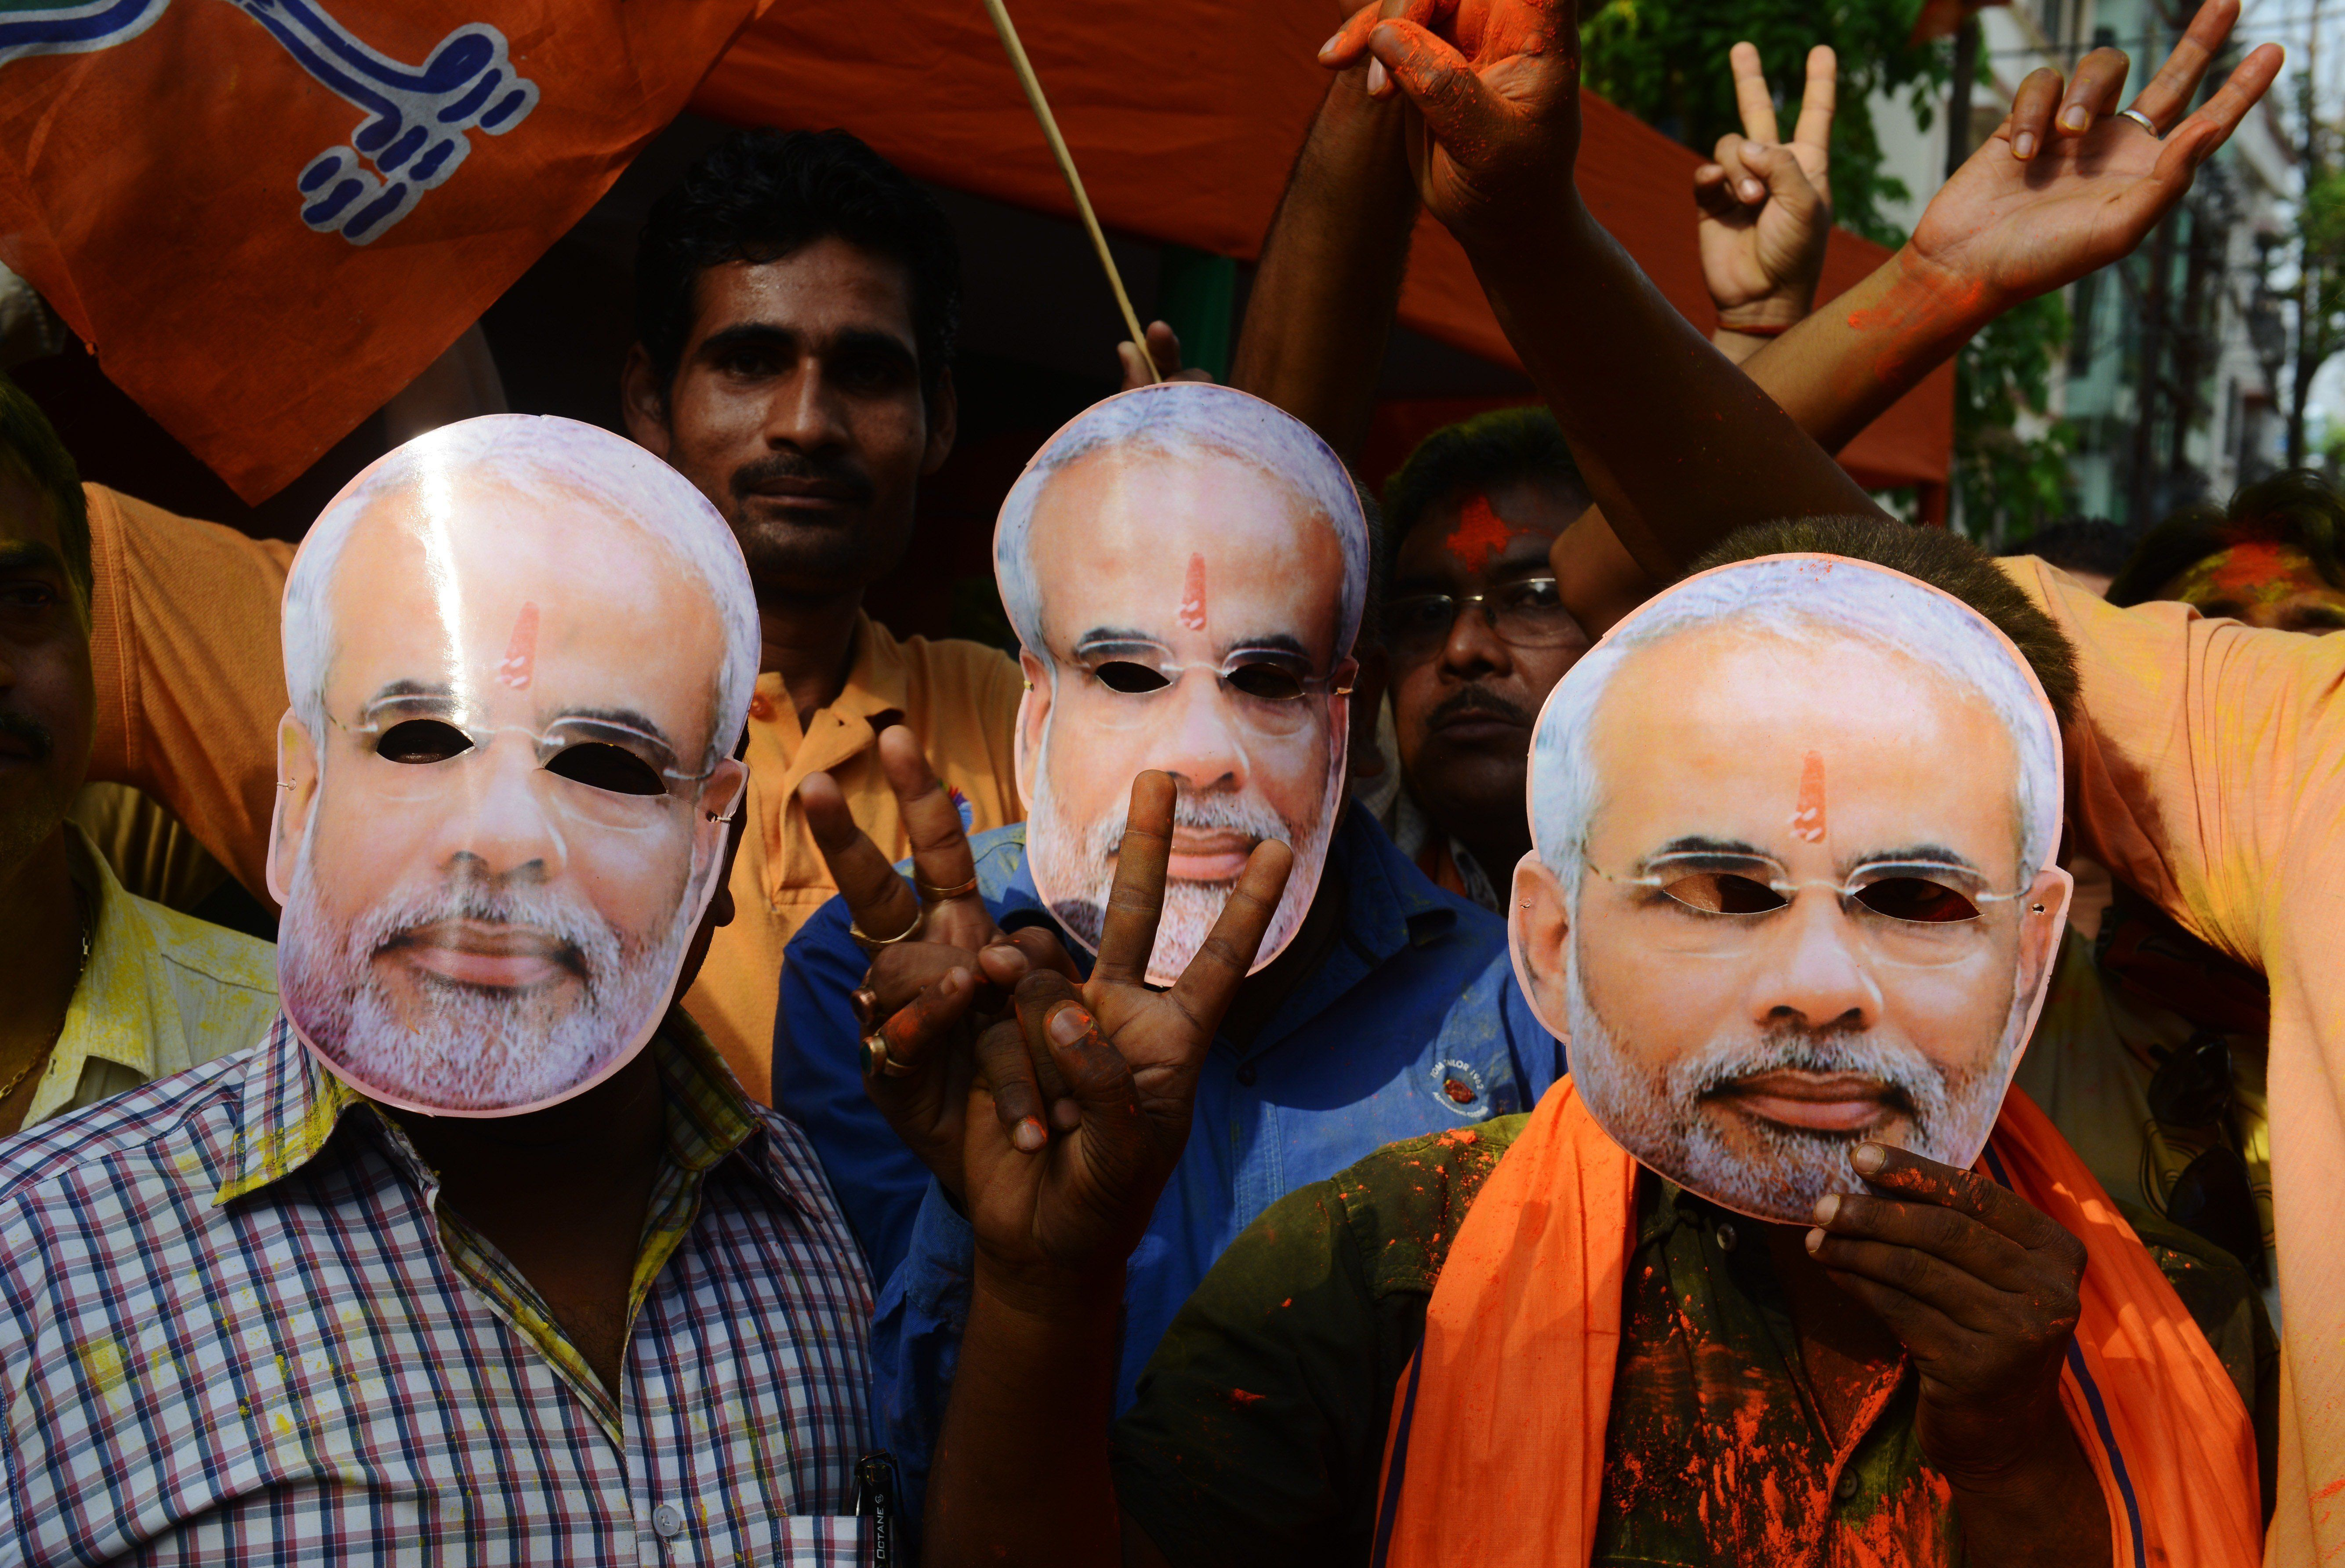 Indians wear masks bearing Modi's image as they celebrate the BJP's election result. Siliguri, India. May 16, 2014.